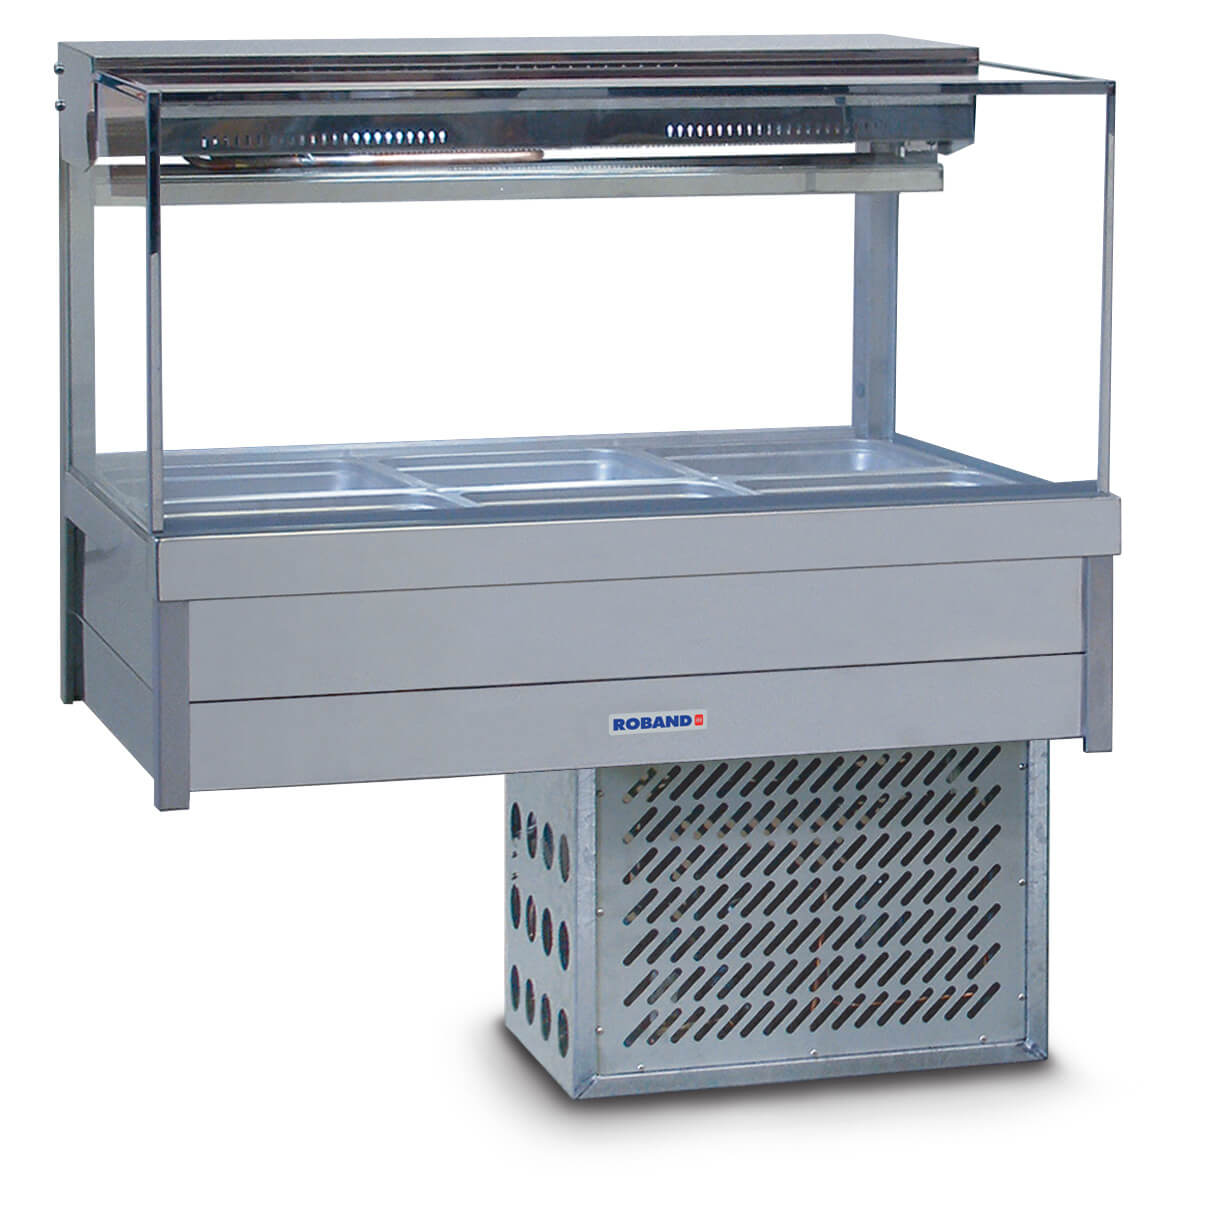 Roband SFX23RD Square Glass Refrigerated Display Bar – Piped and Foamed only (no motor), 6 pans